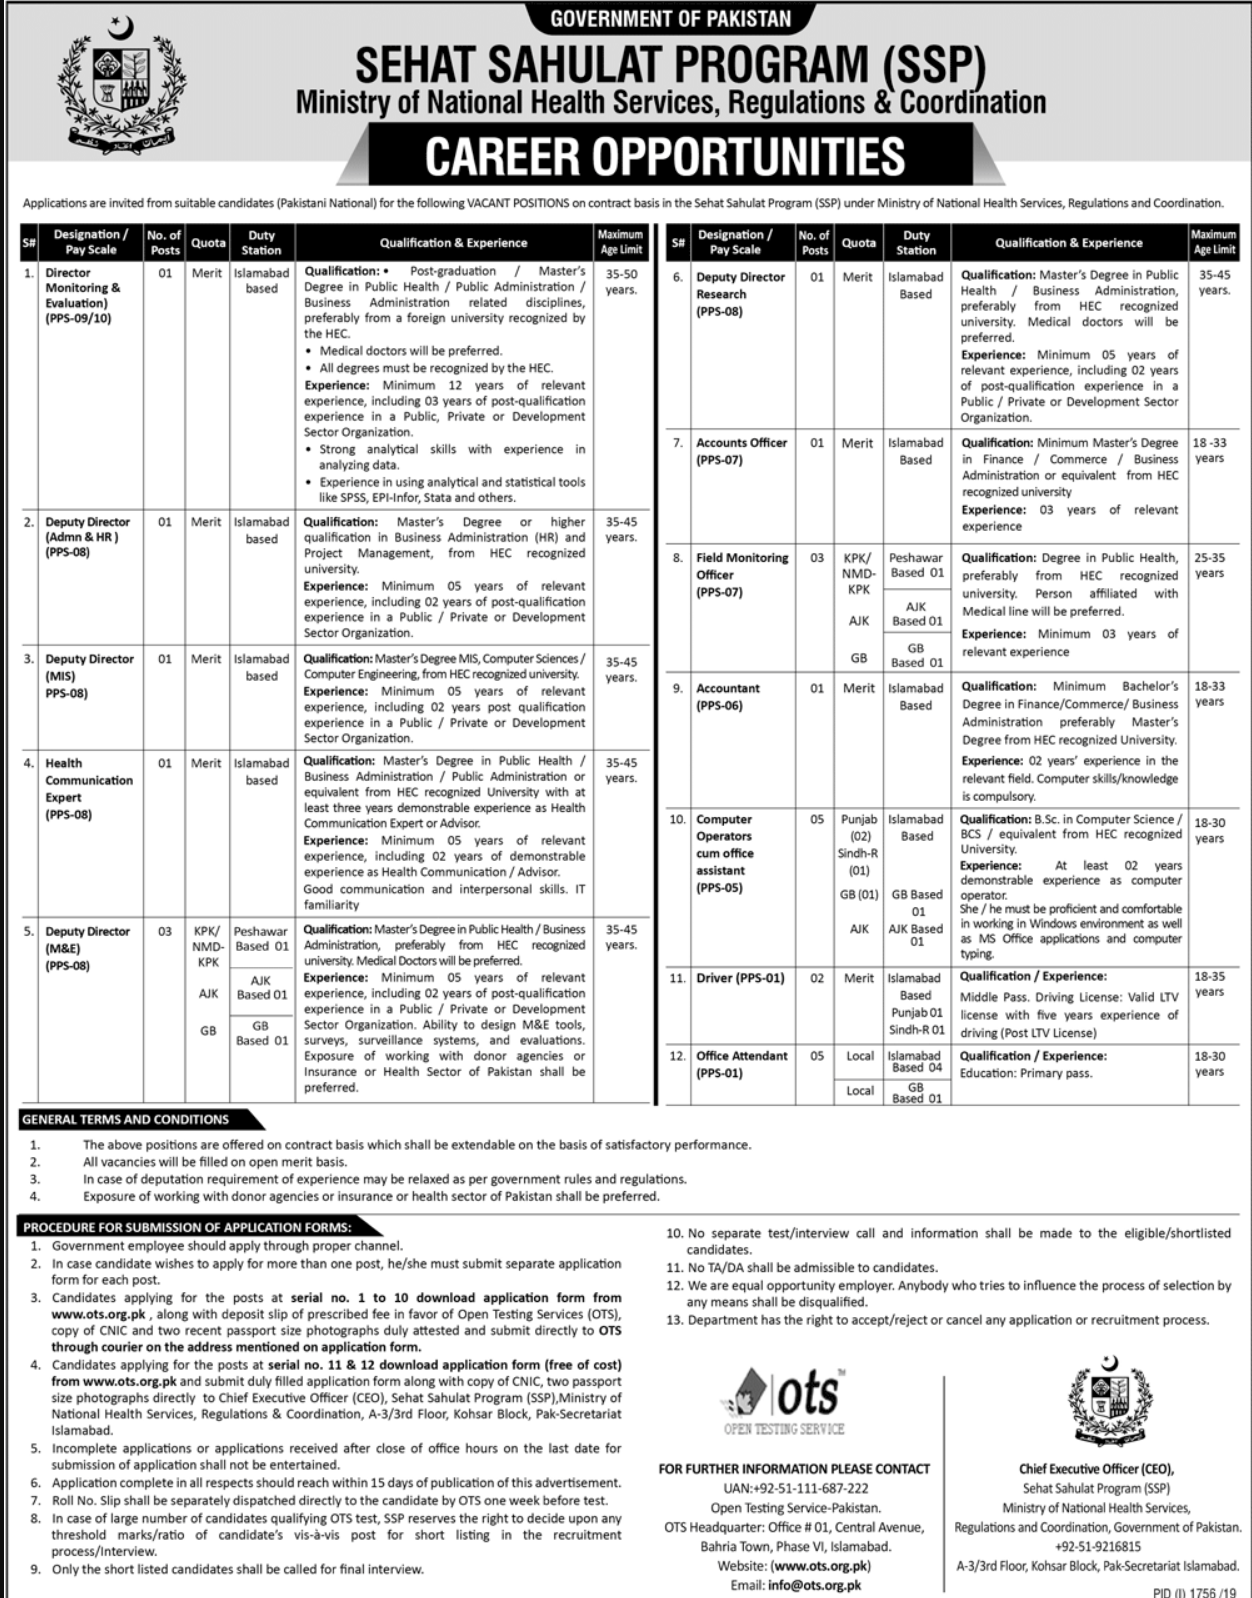 Sehat Sahulat Program SSP NHSRC Jobs OTS Test Roll No Slip